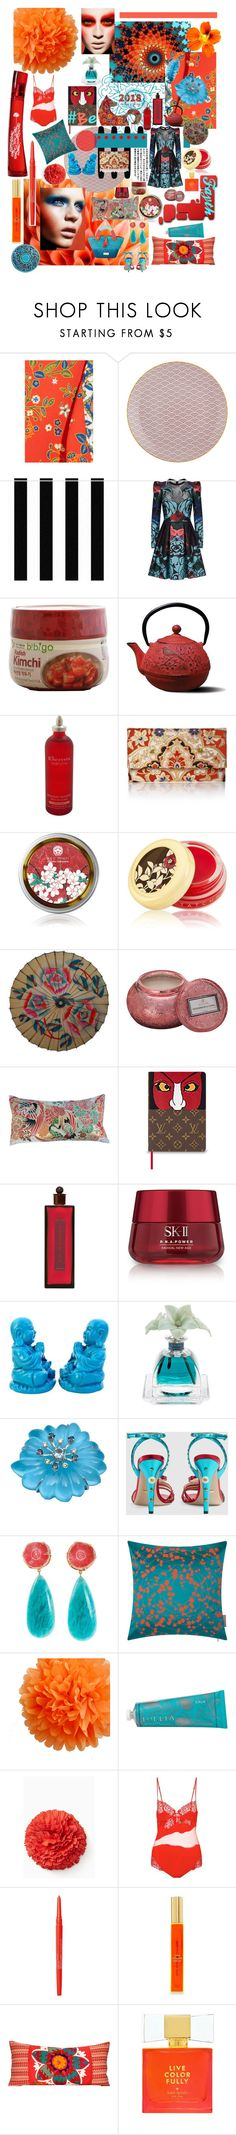 """""""Year of the Dog"""" by faythalassique ❤ liked on Polyvore featuring Tory Burch, Tokyo Design Studio, Elie Saab, Elemis, Tatcha, Voluspa, Shiseido, SK-II, Agraria and Gucci"""